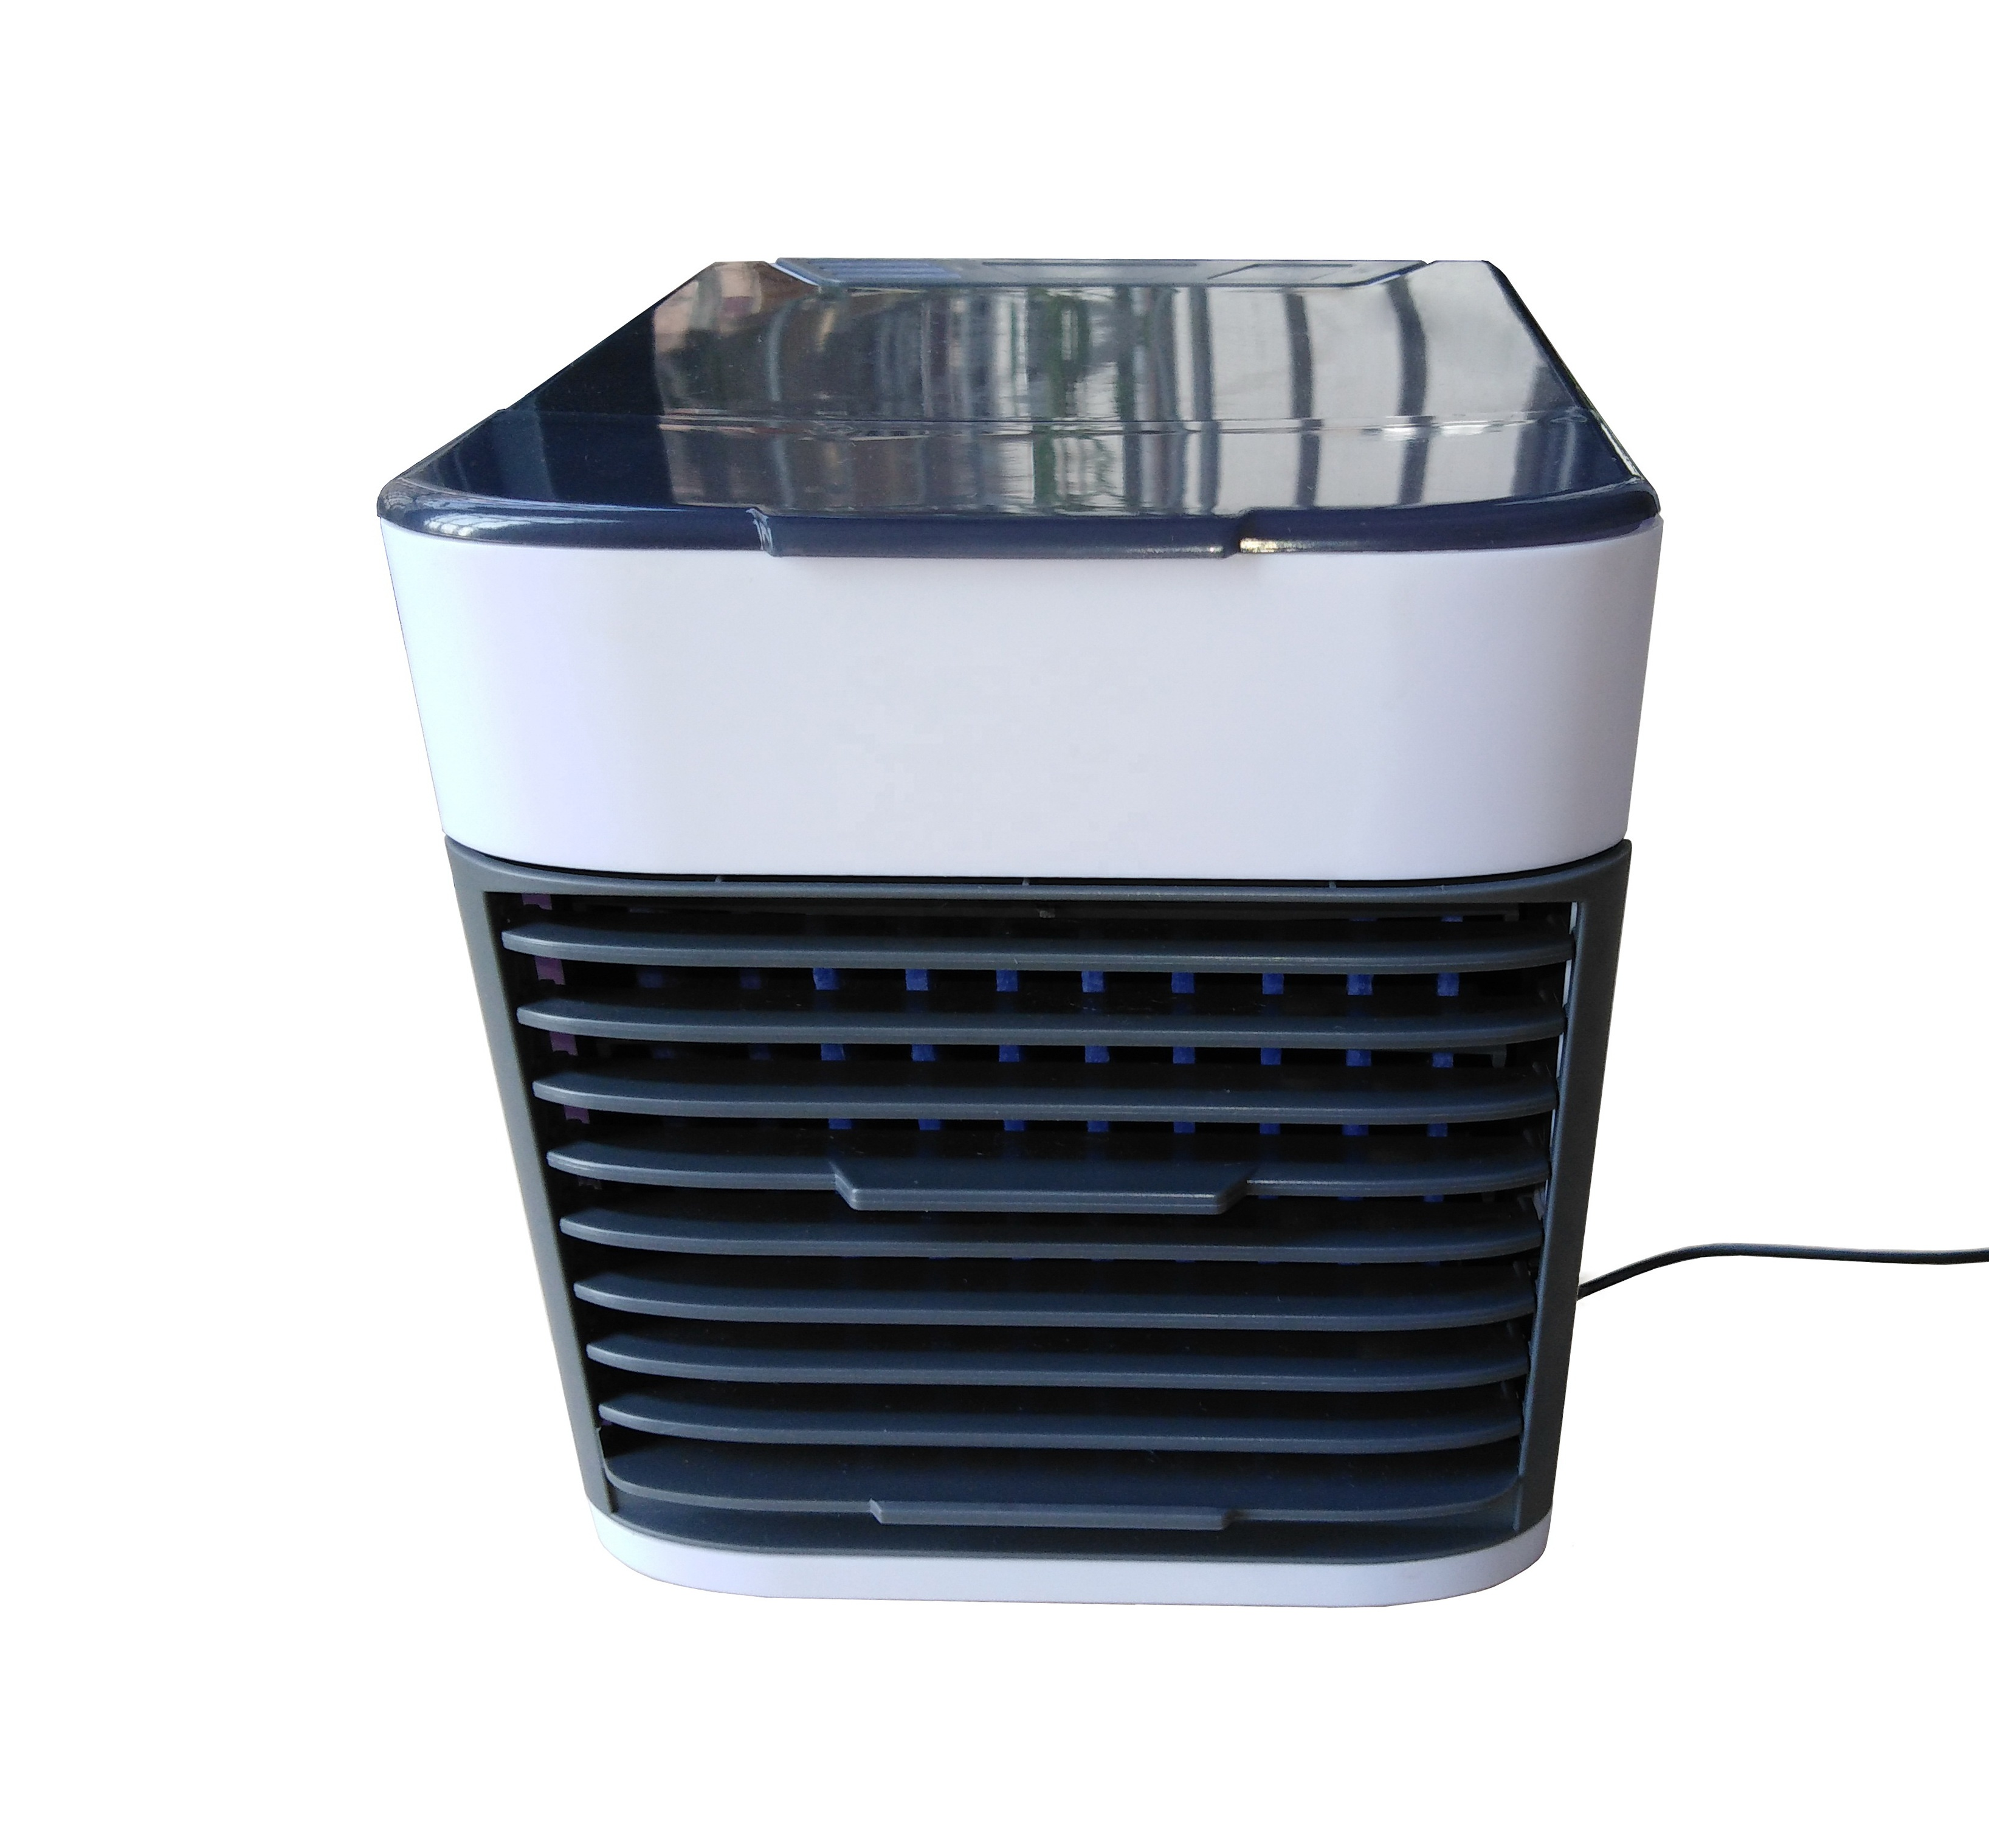 8W Hot Sale Fancy New Style Mini Room Air Cooler Evaporative